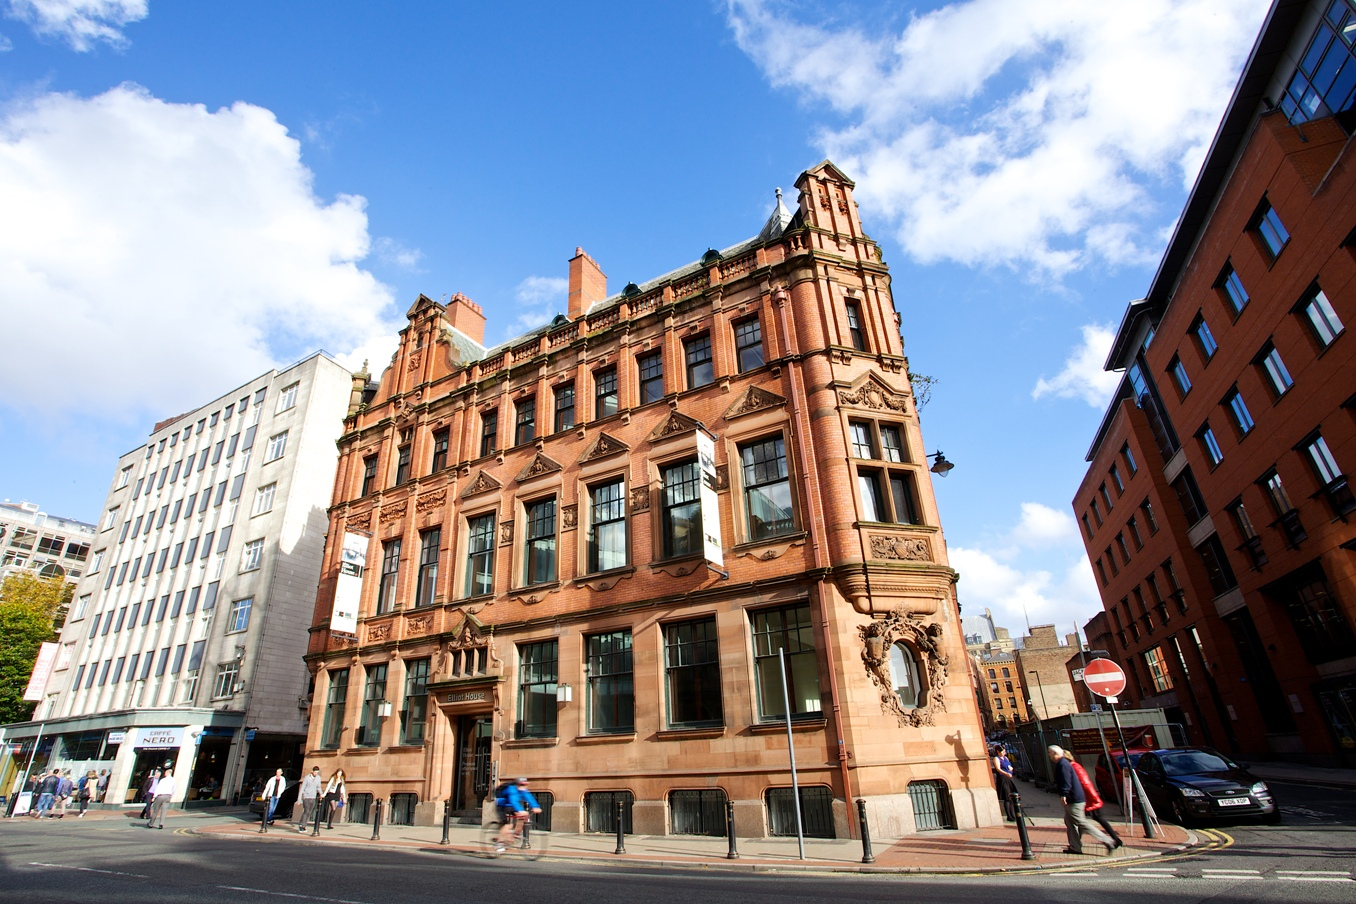 Manchester Chamber of Commerce, 151 Deansgate